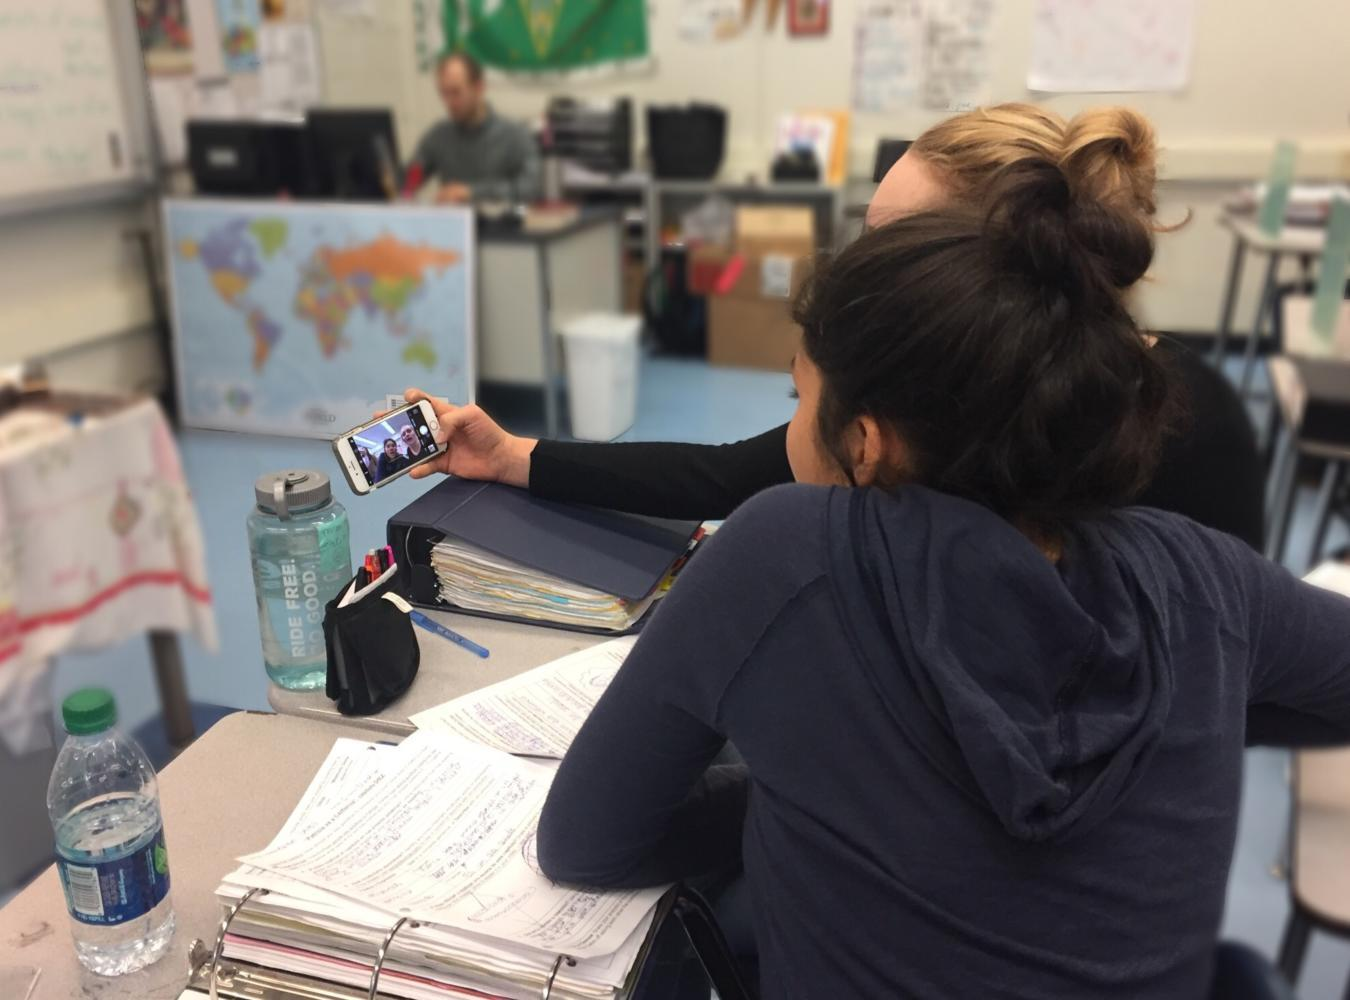 The longer class period  allows students in Spanish class to enjoy hands-on activities, such as recording videos  of conversations to review later.